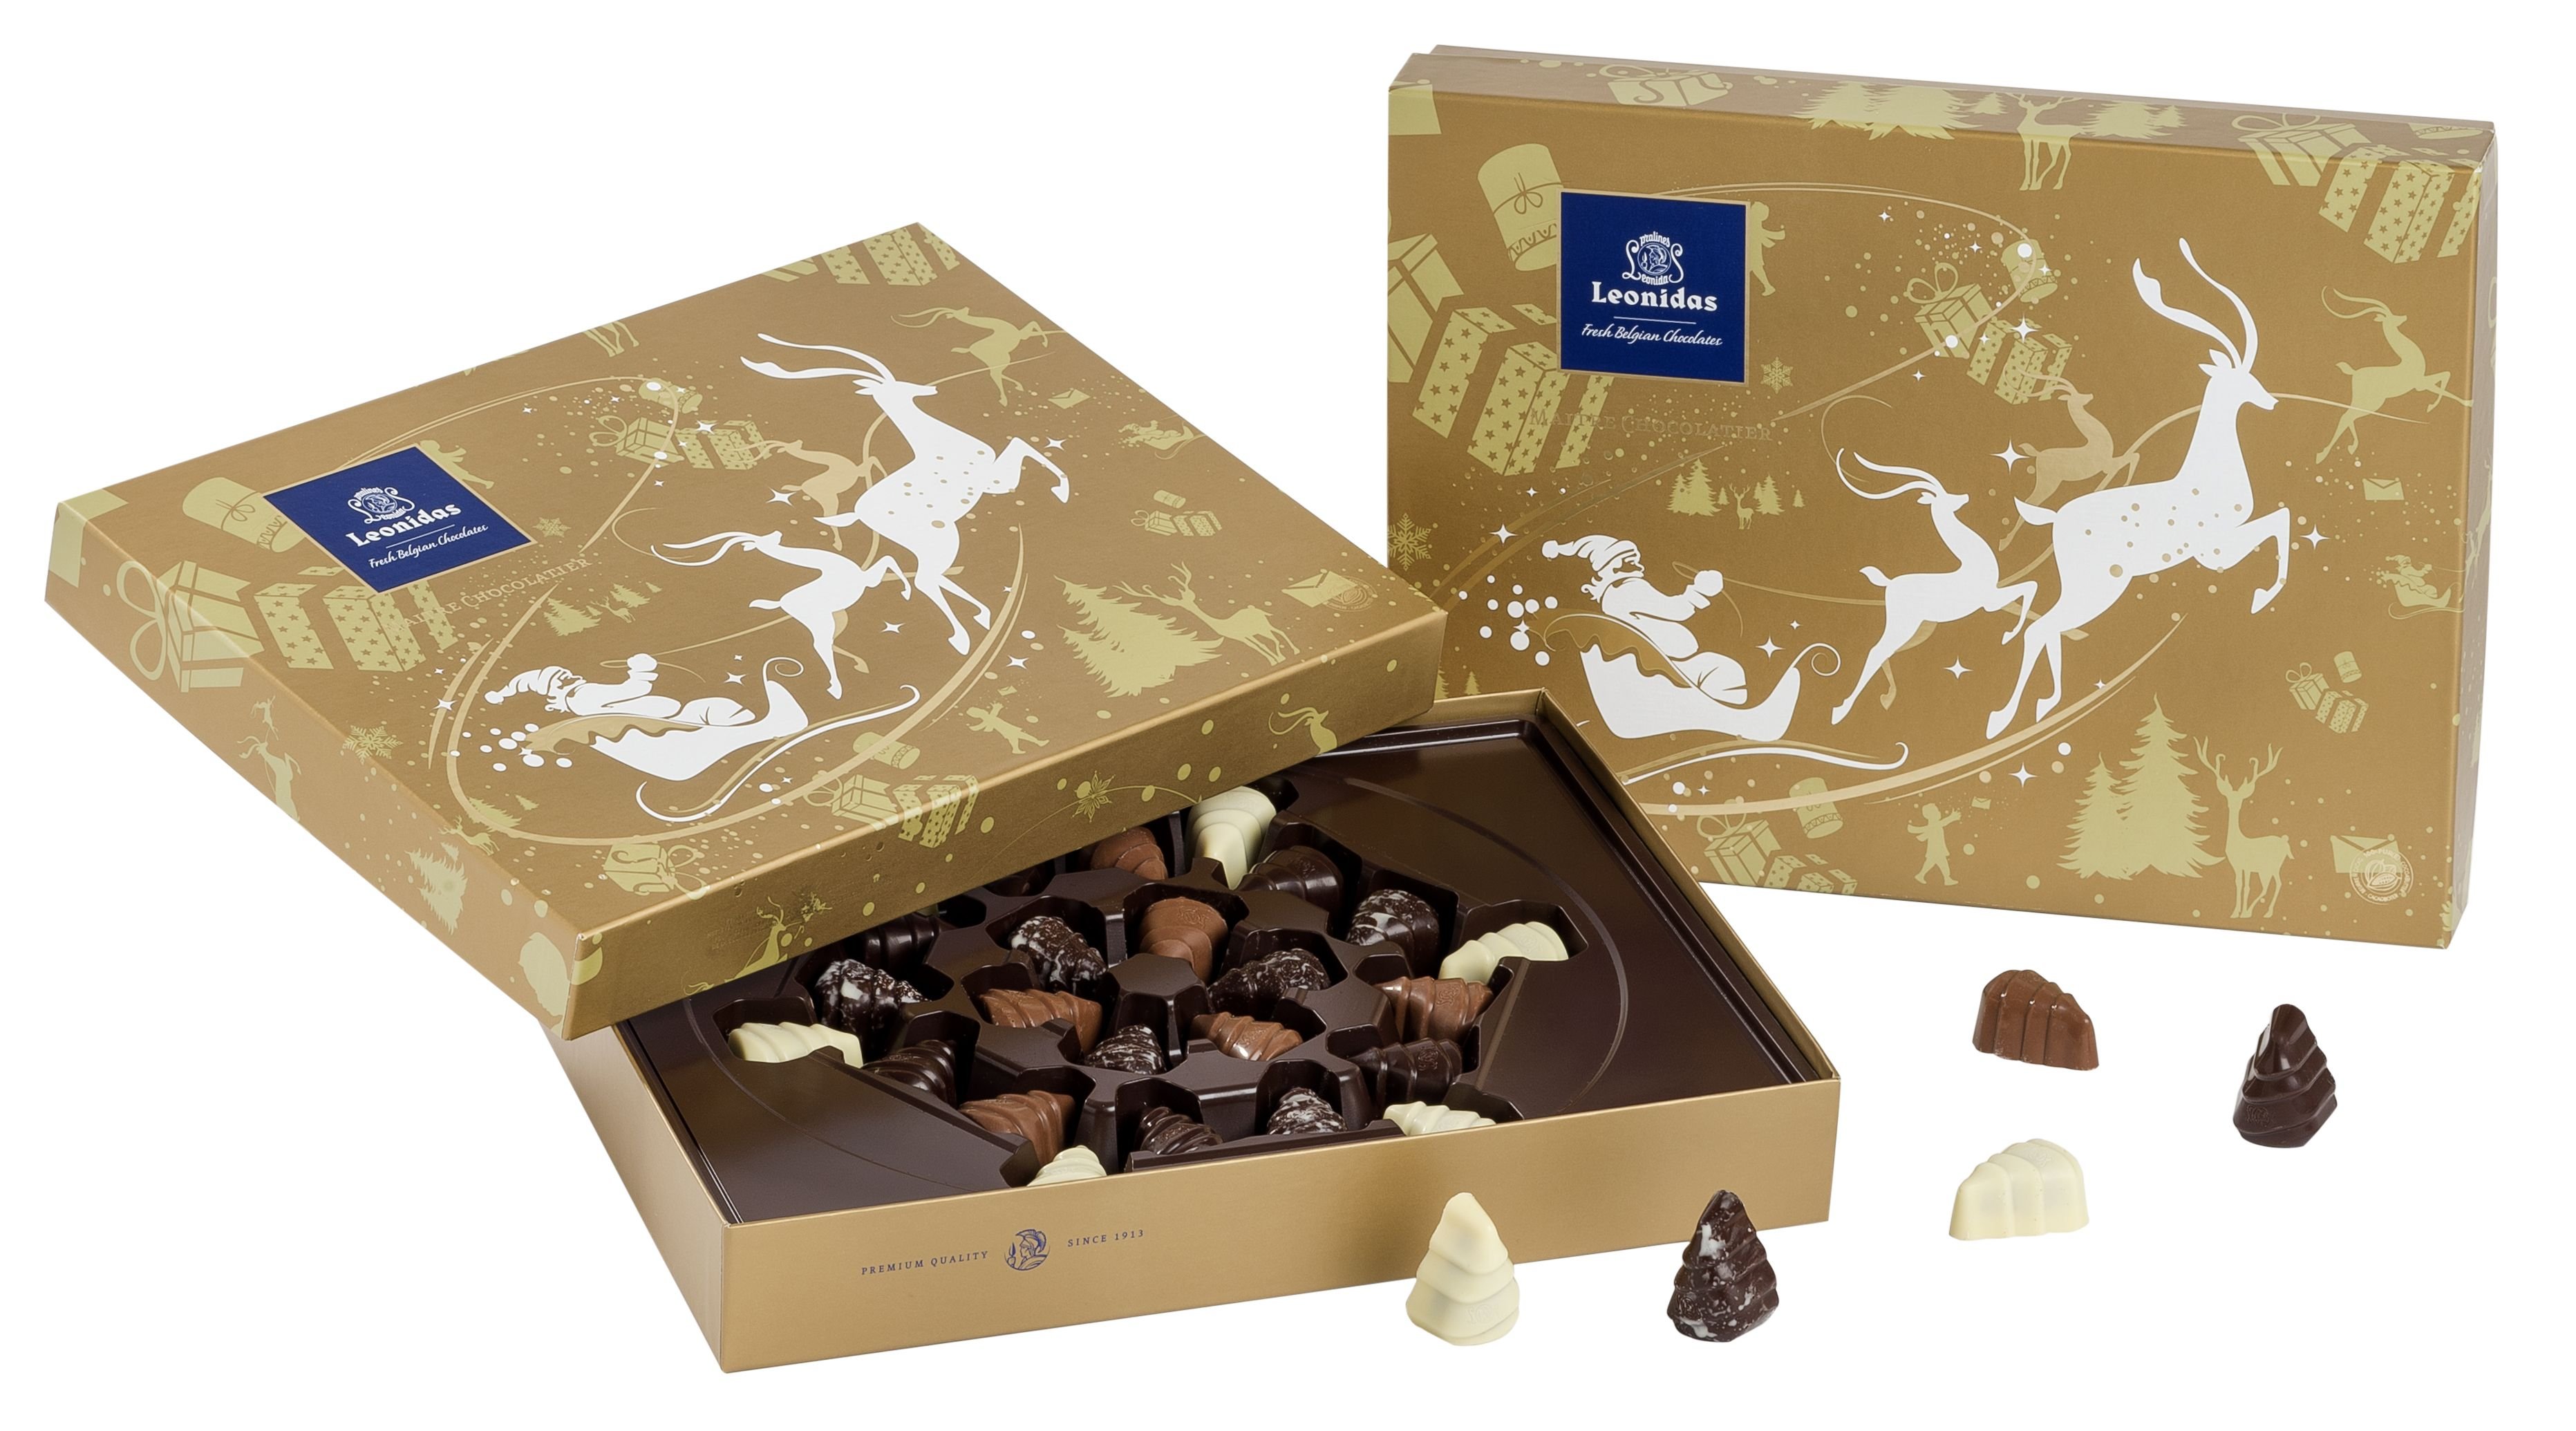 Leonidas Holiday 2015 Gold Box www.leonidas-chocolate.com